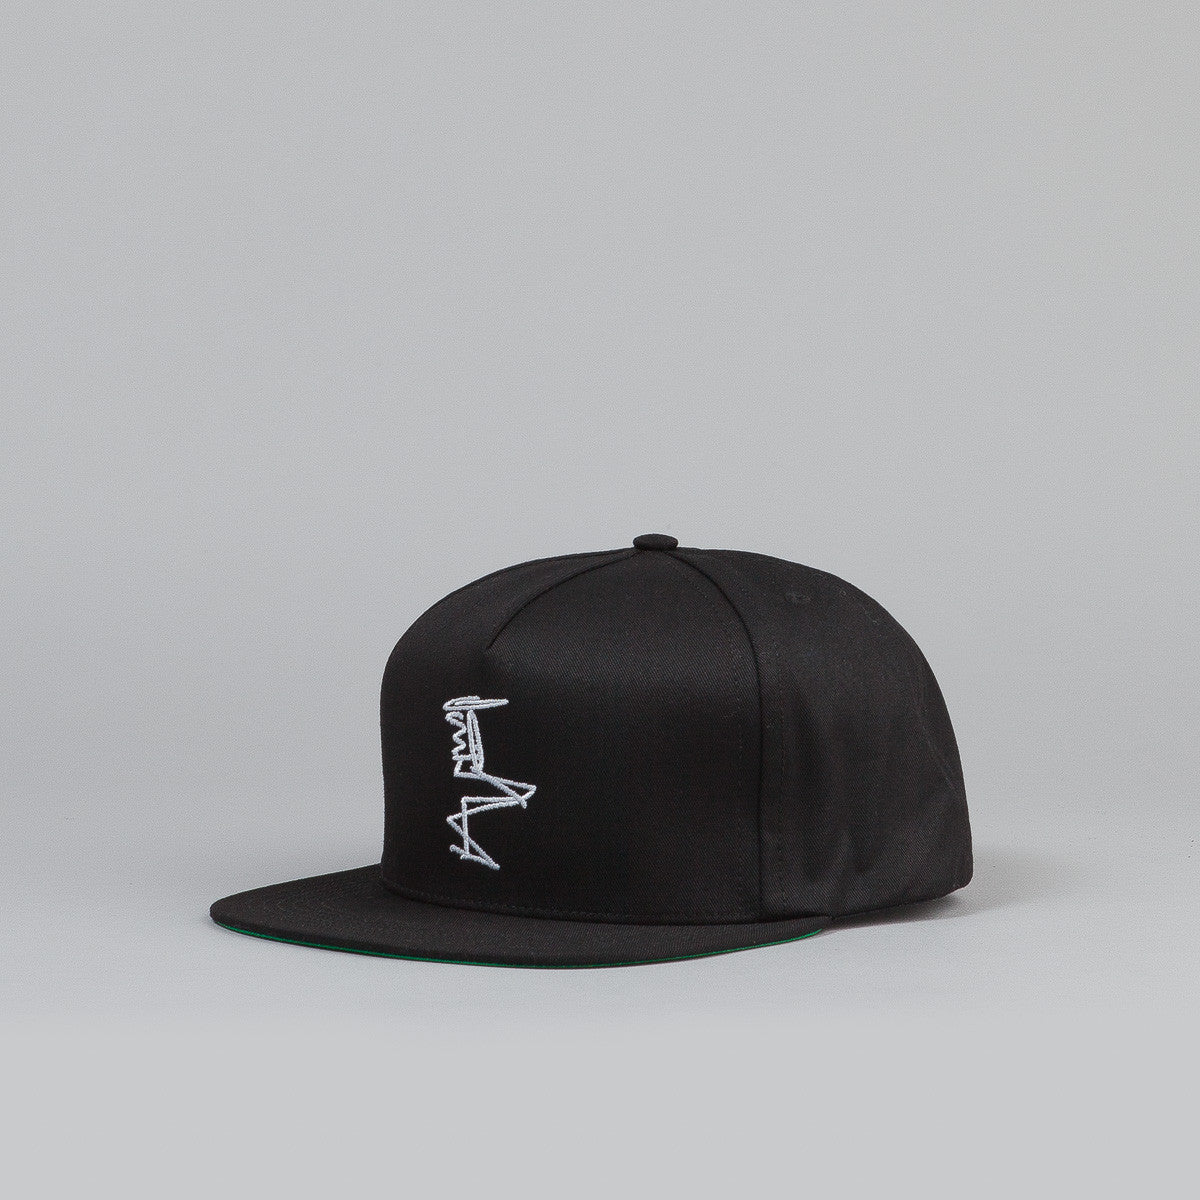 HUF X Stay High 149 Snapback Cap